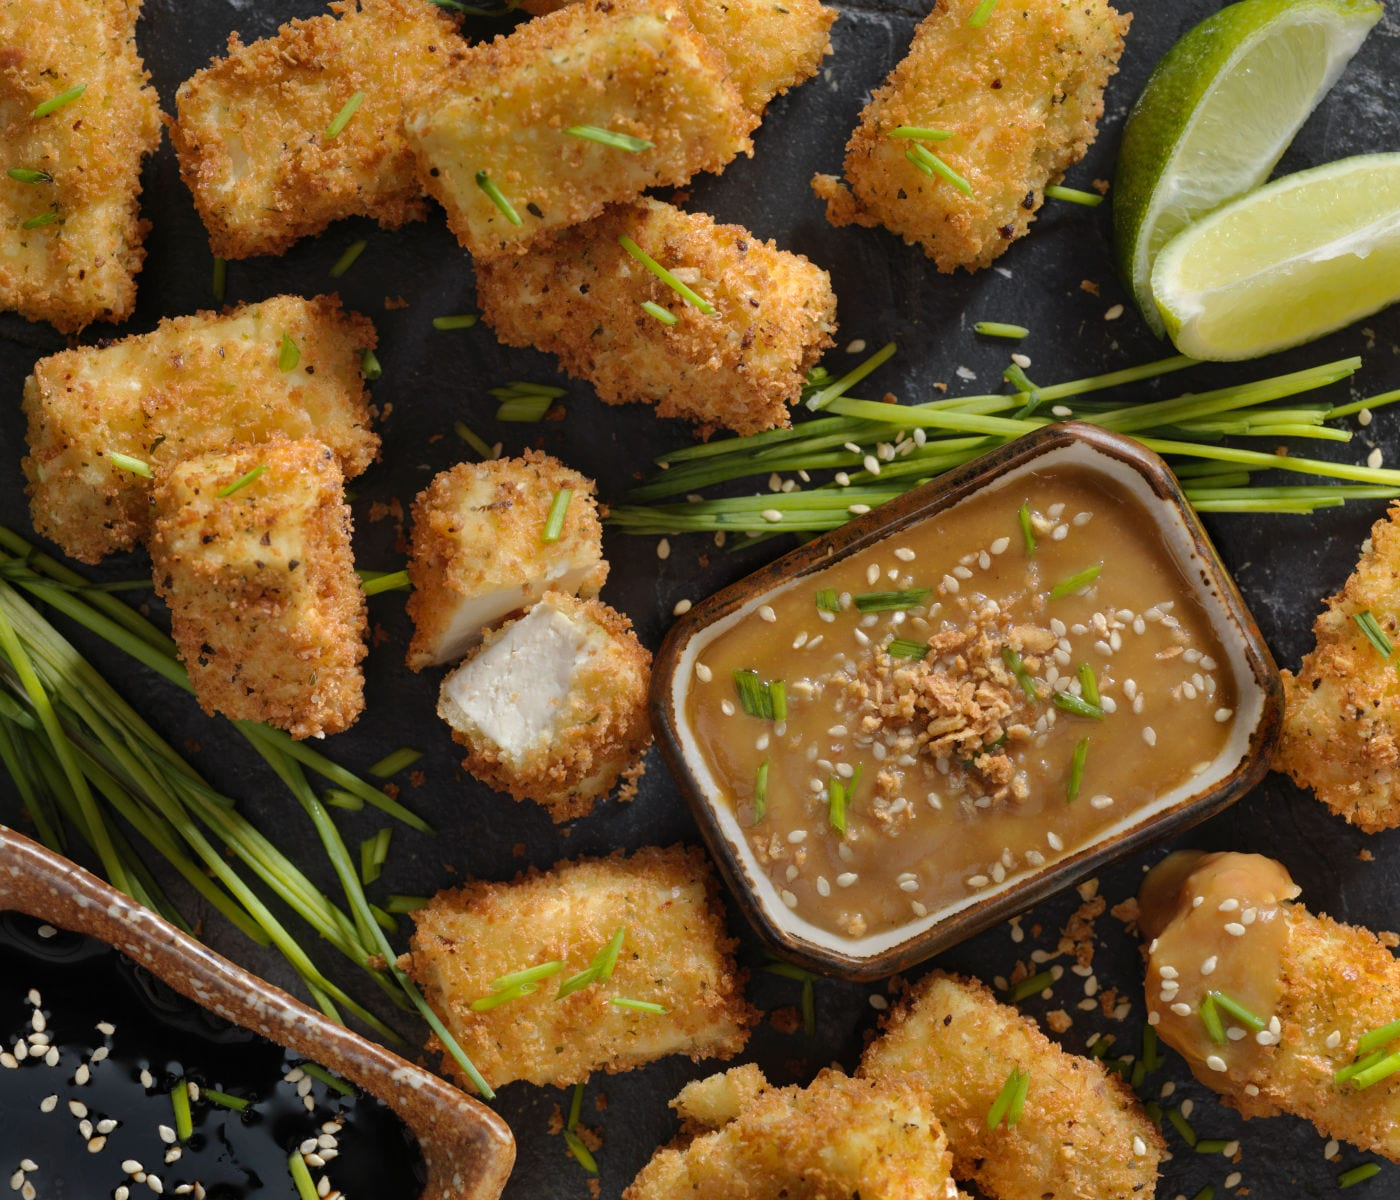 Breaded Tofu Bites with a Ginger Peanut Dipping Sauce